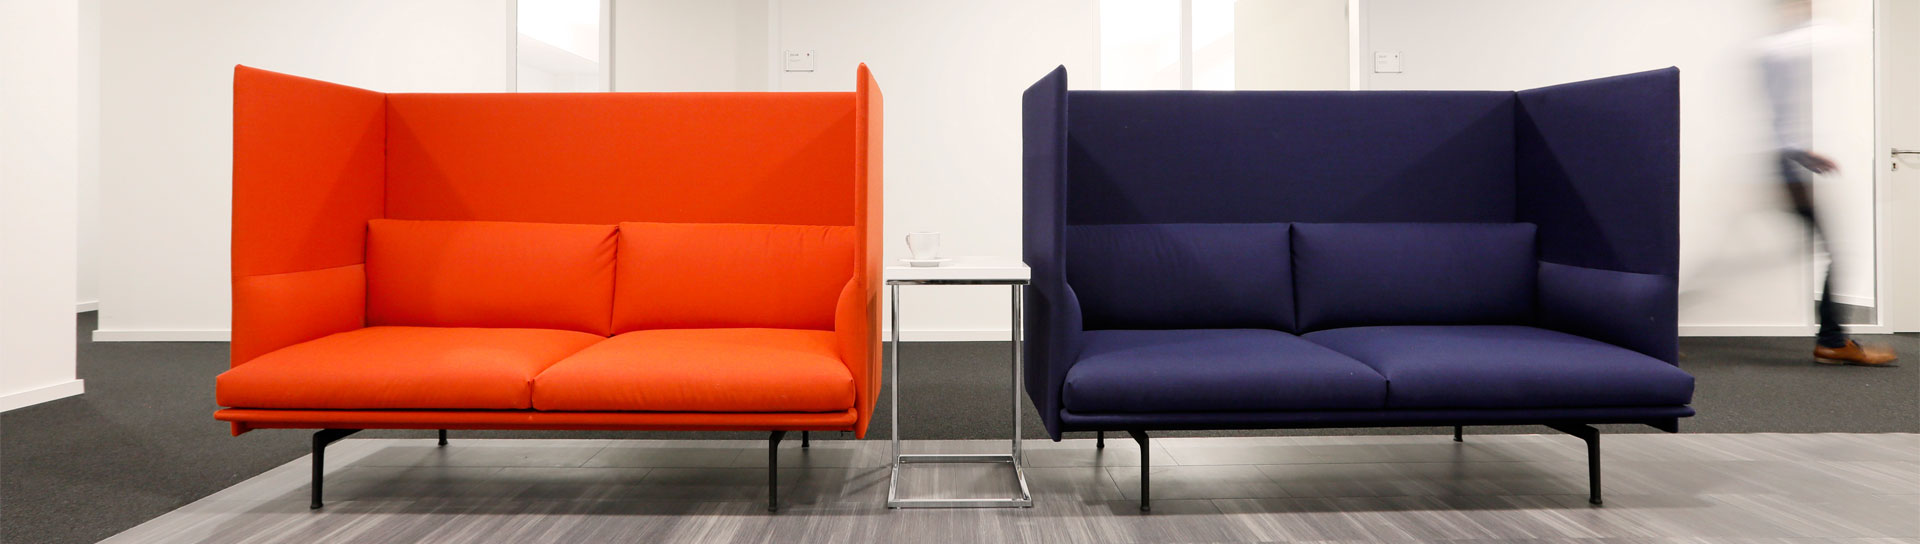 Two modern sofas in red and blue in the MSIG Insurance Europe AG office